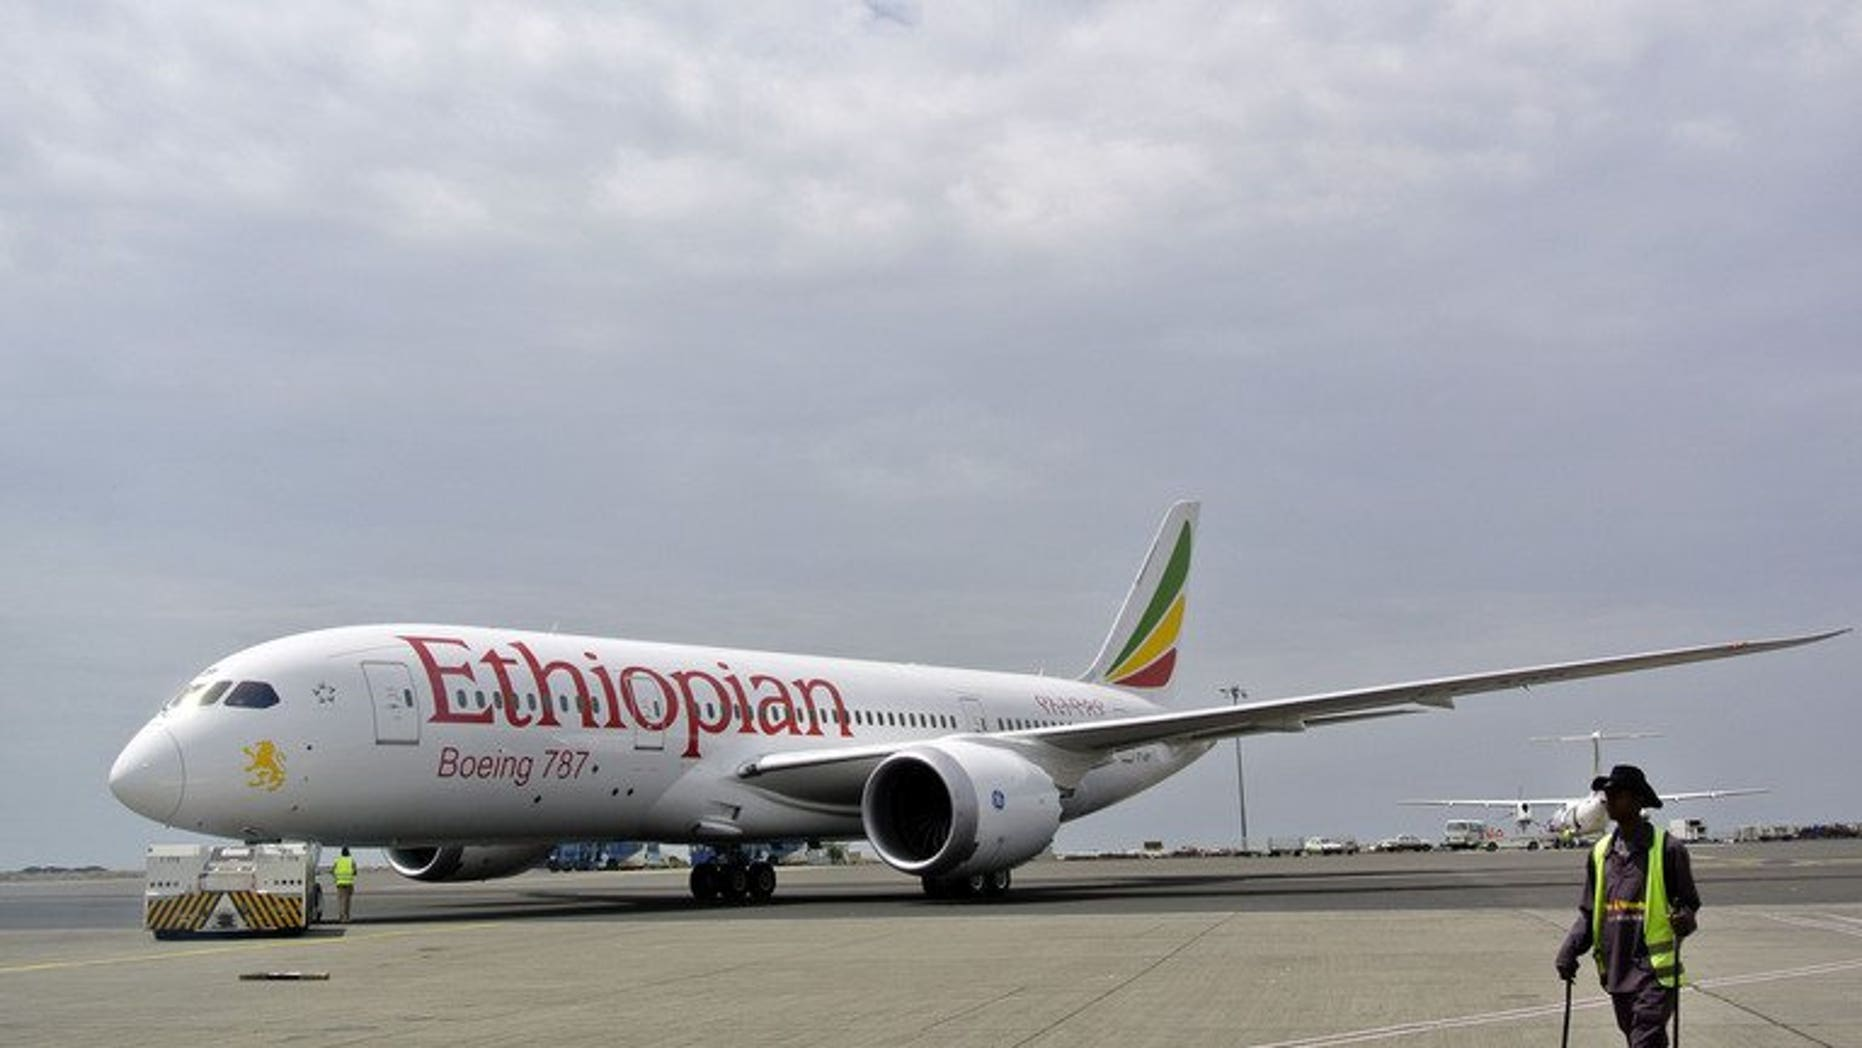 An Ethiopian Airlines Dreamliner jet is pictured on April 27, 2013. London's Heathrow airport suspended both of its runways after another parked Ethiopian Airlines Boeing 787 Dreamliner caught fire, but no casualties were reported.